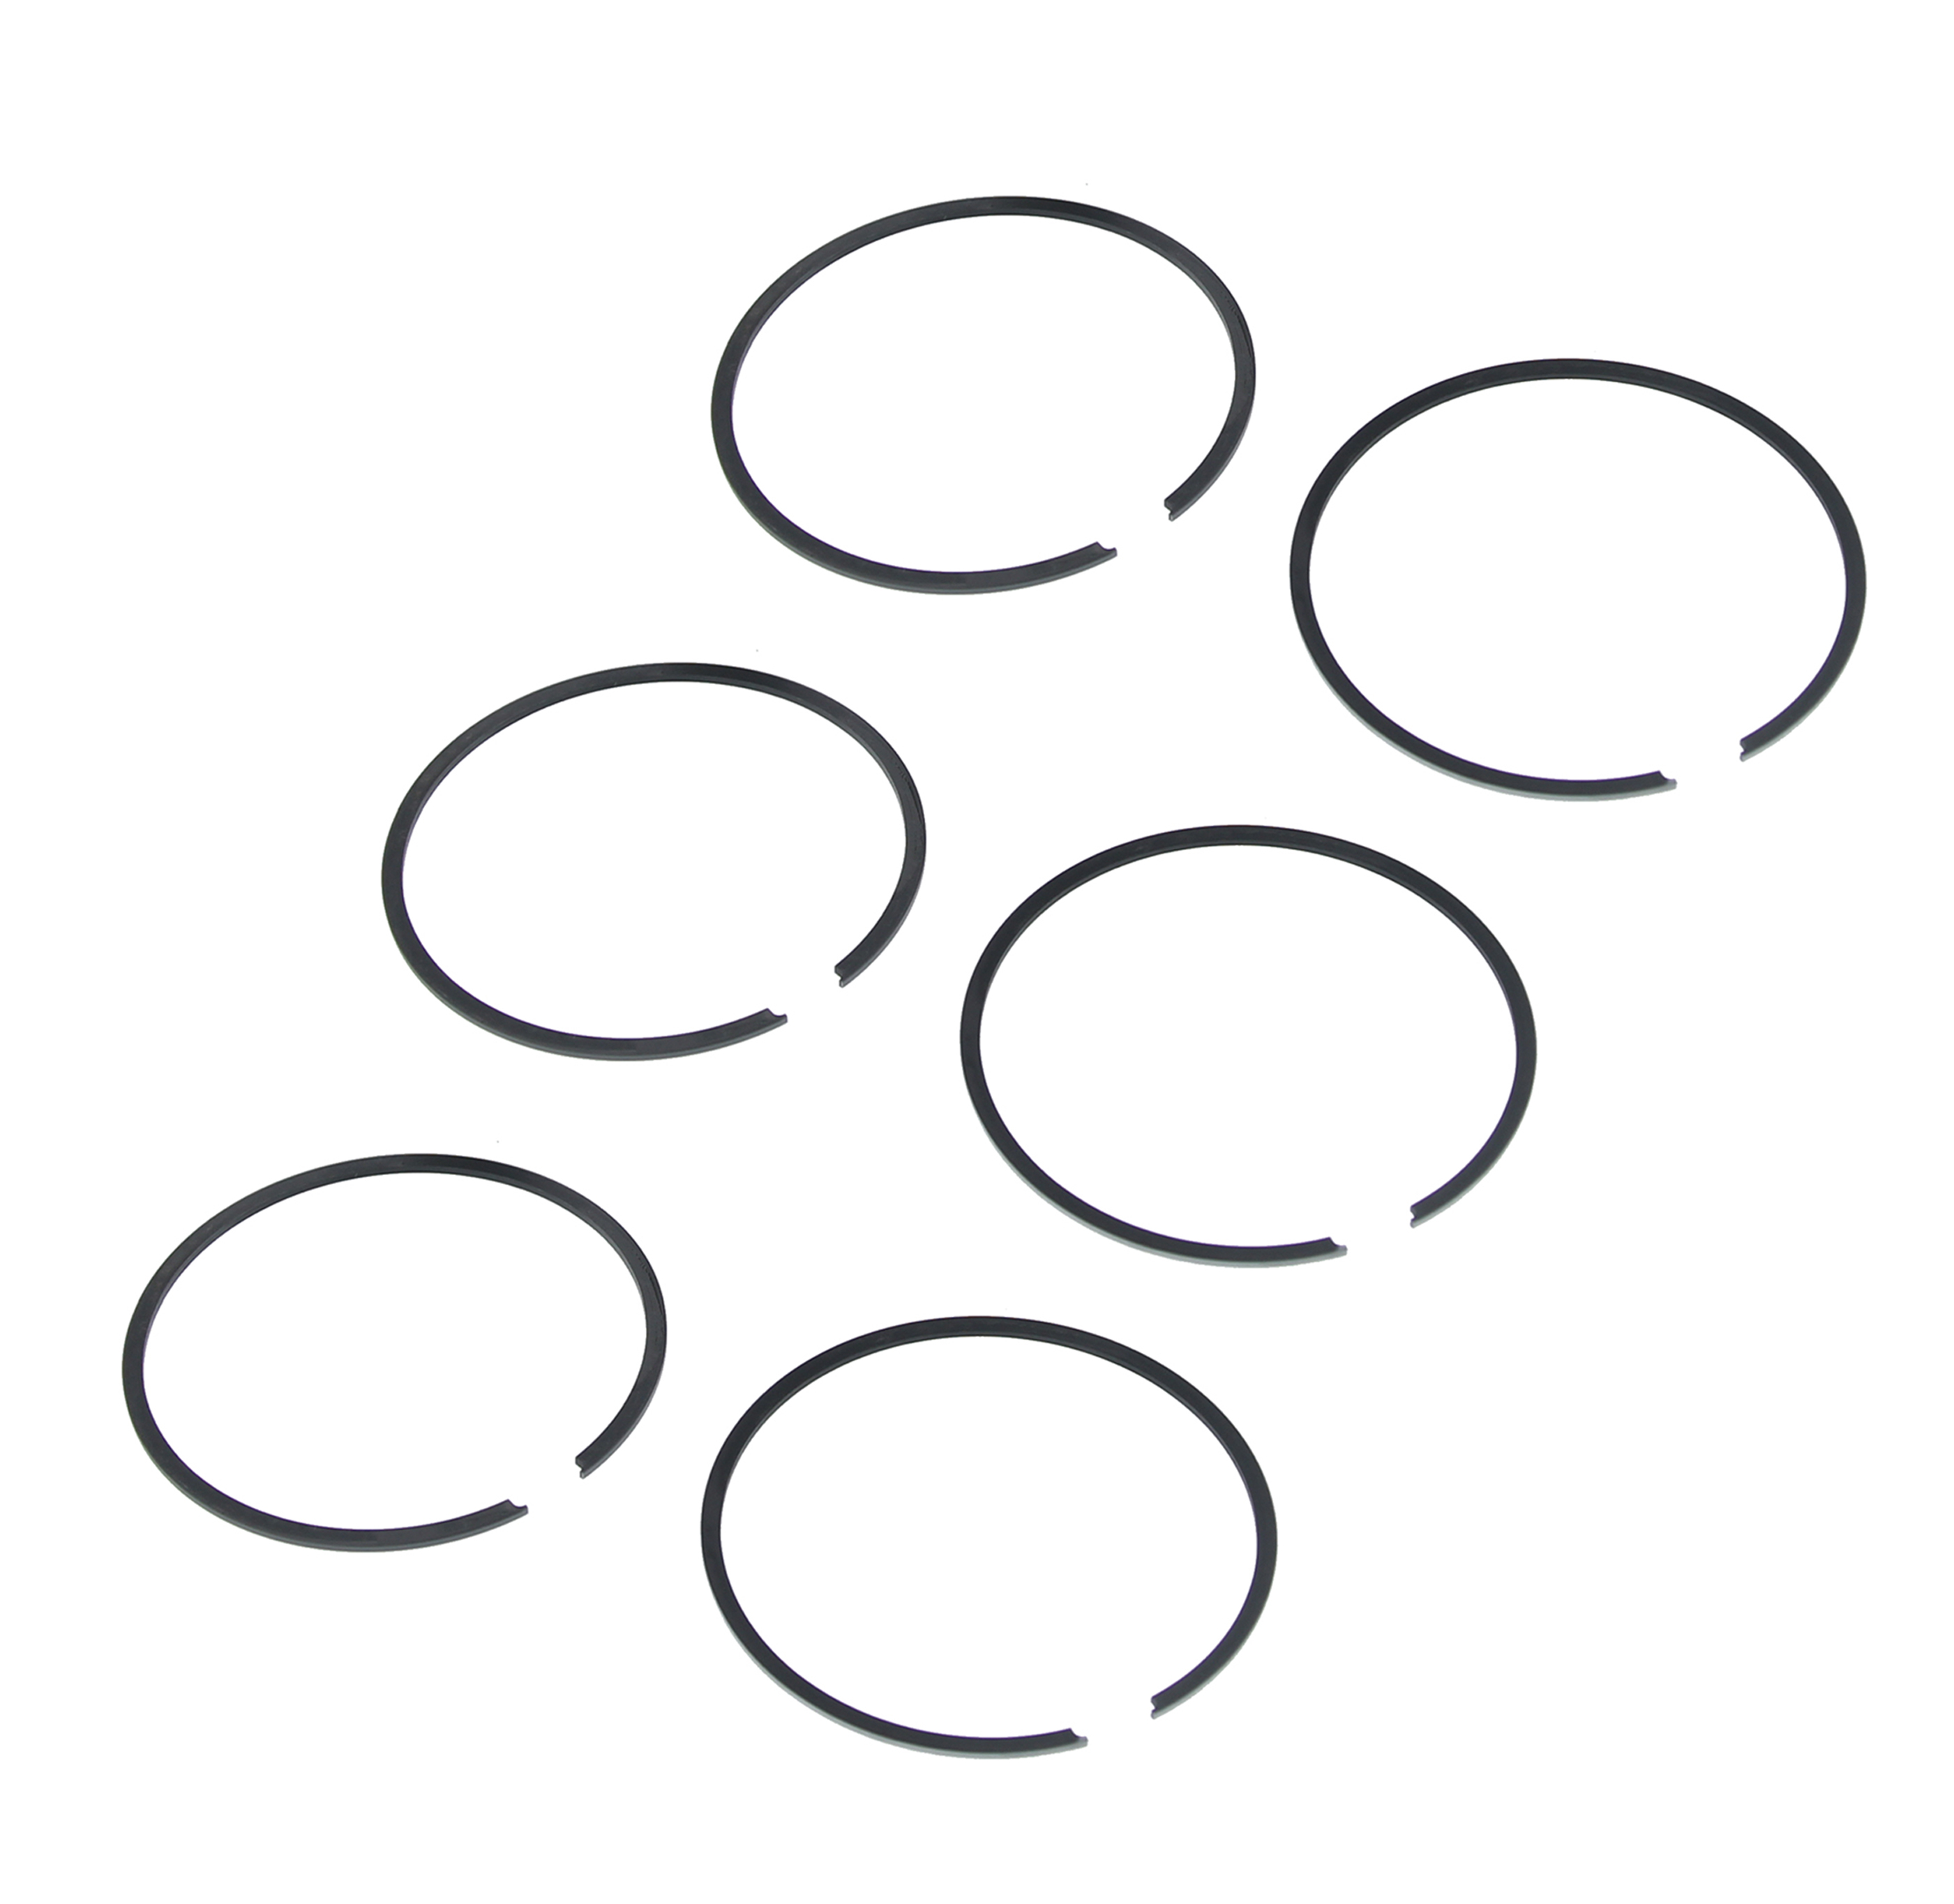 1998 1999 2000 Ski-Doo Formula III 700 Piston Rings x3by